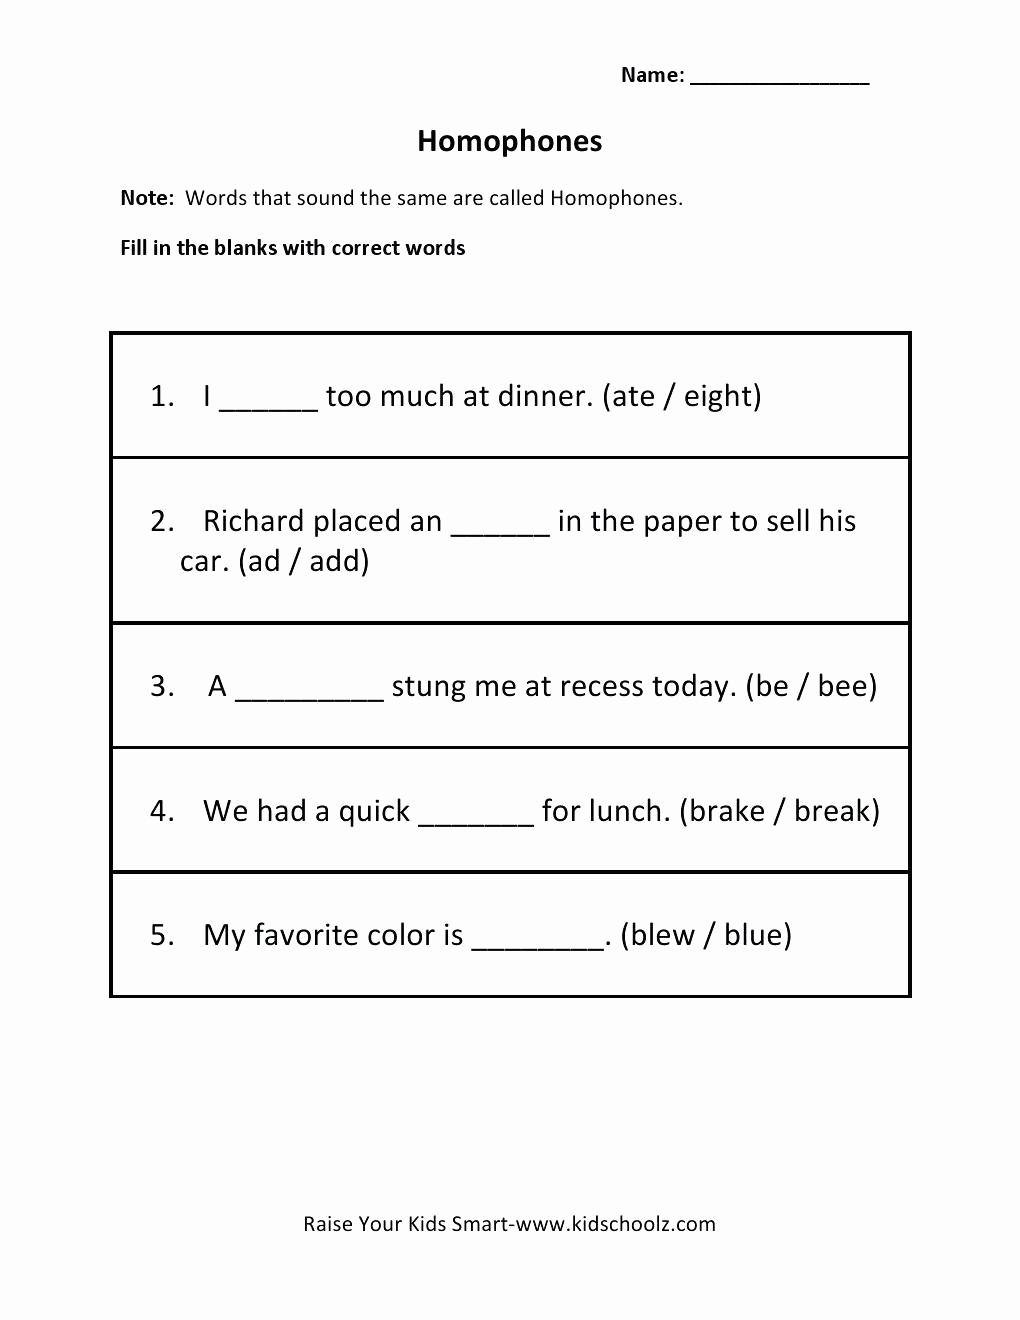 Homonym Worksheets Middle School Awesome 20 Homonym Worksheets Middle School